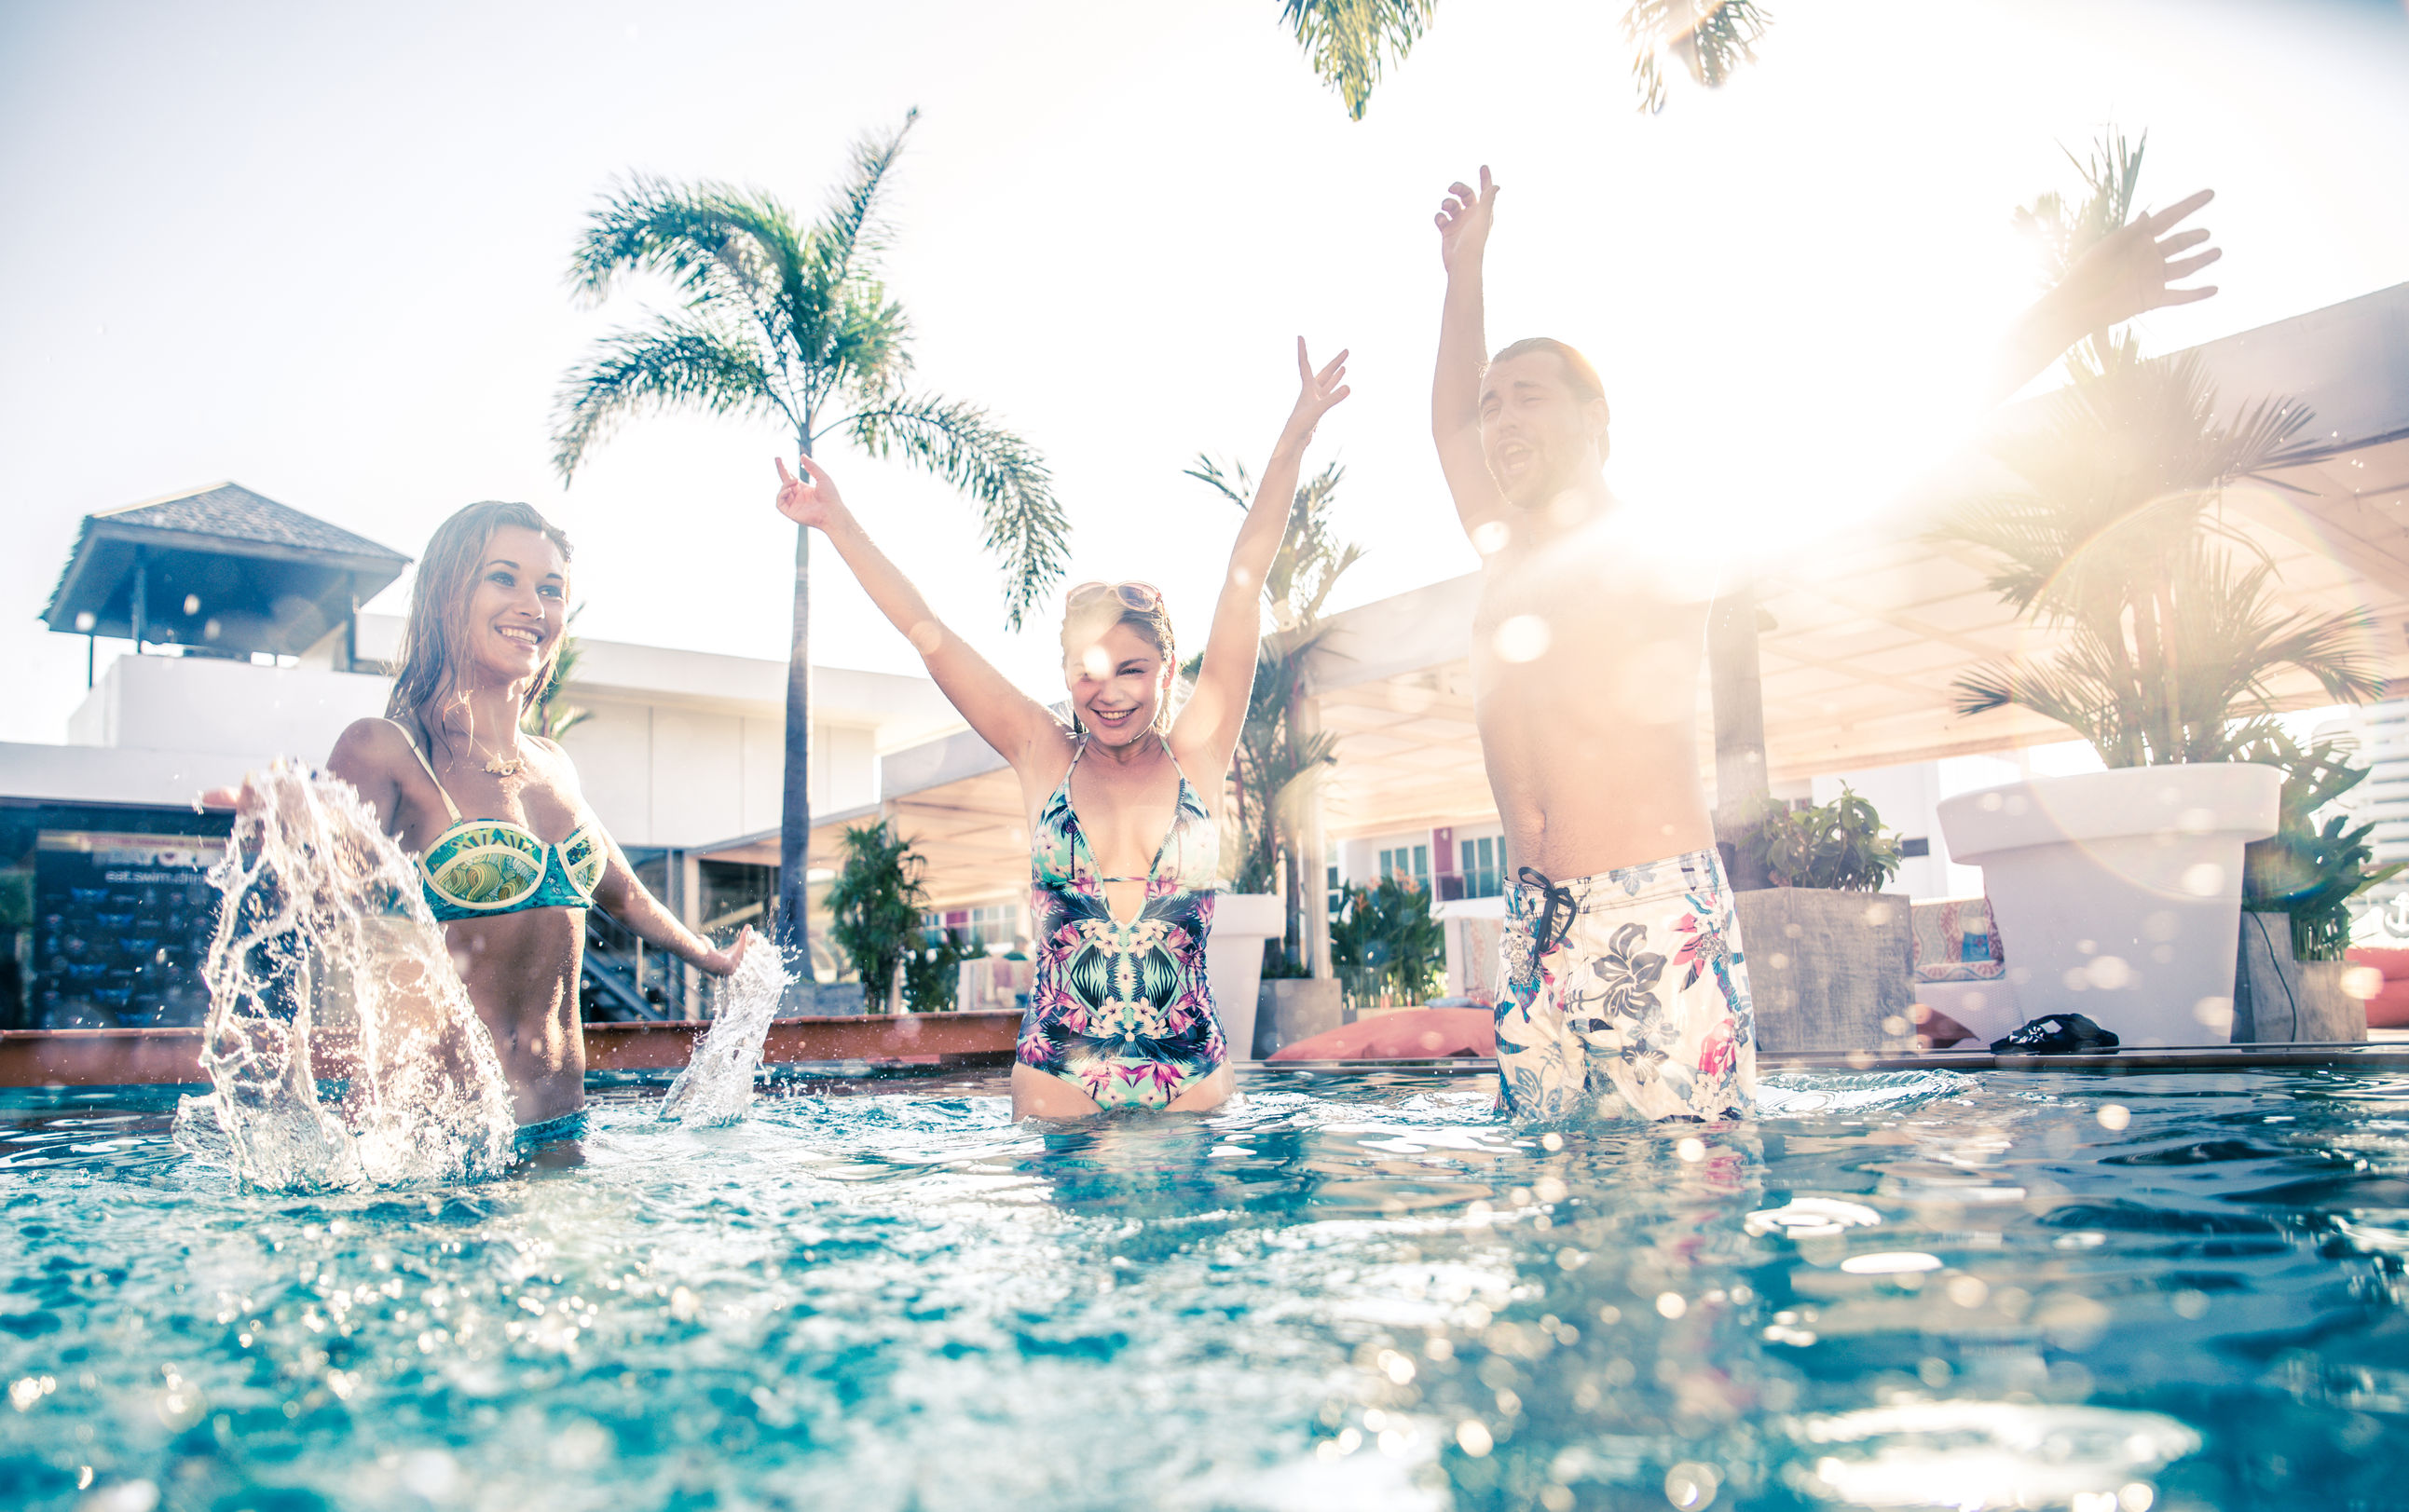 Market Your Summer Excitement with a Pool Cabana Rental Giveaway